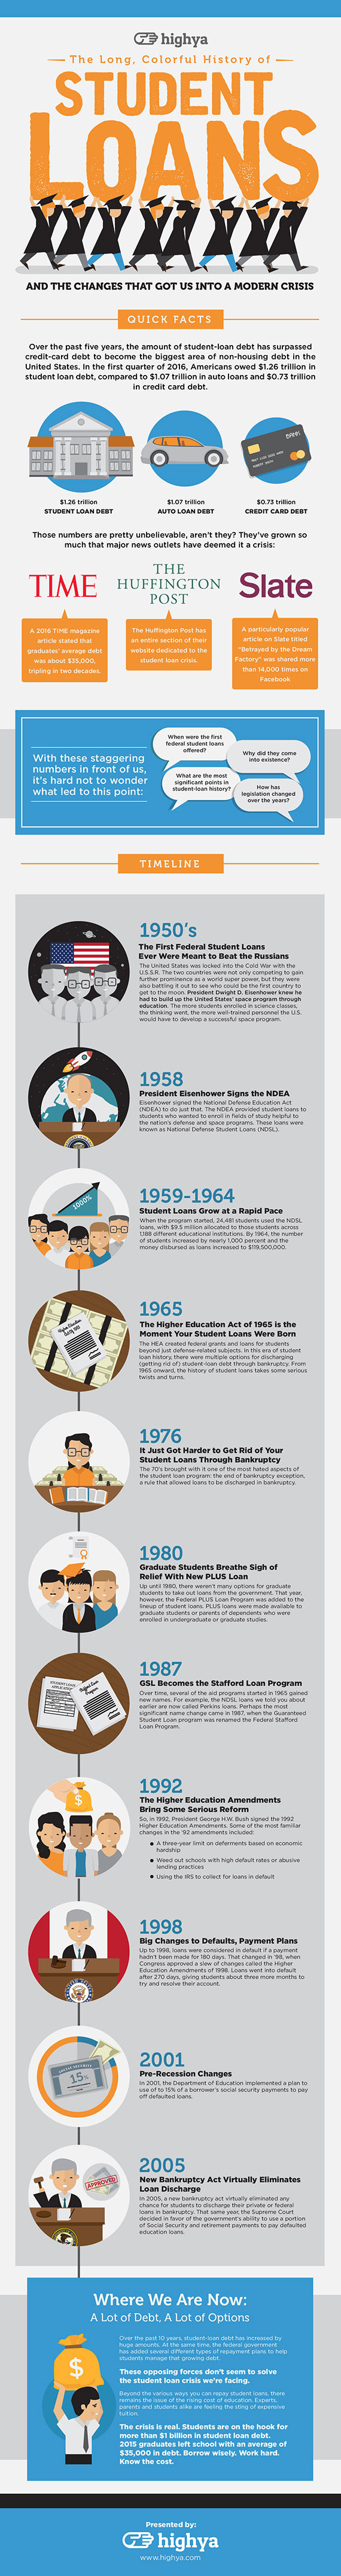 The Long, Colorful History of Student Loans - Infographic